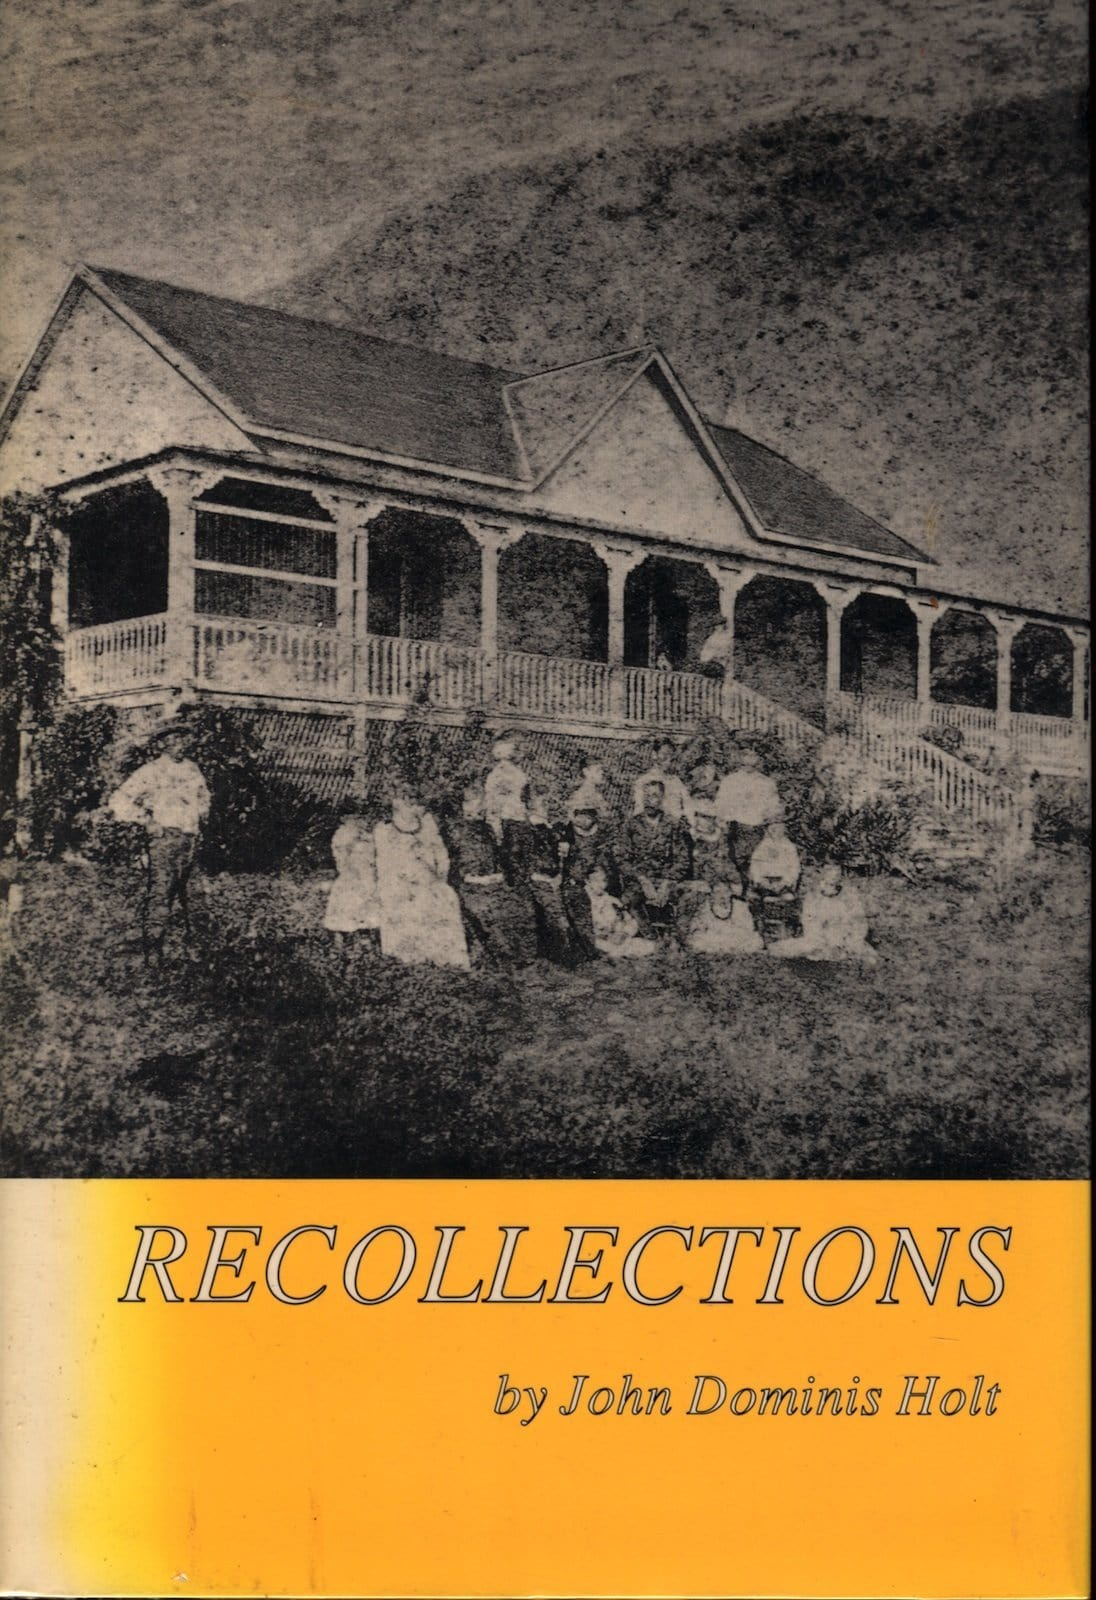 Recollections: Memoirs of John Dominis Holt, 1919-1935